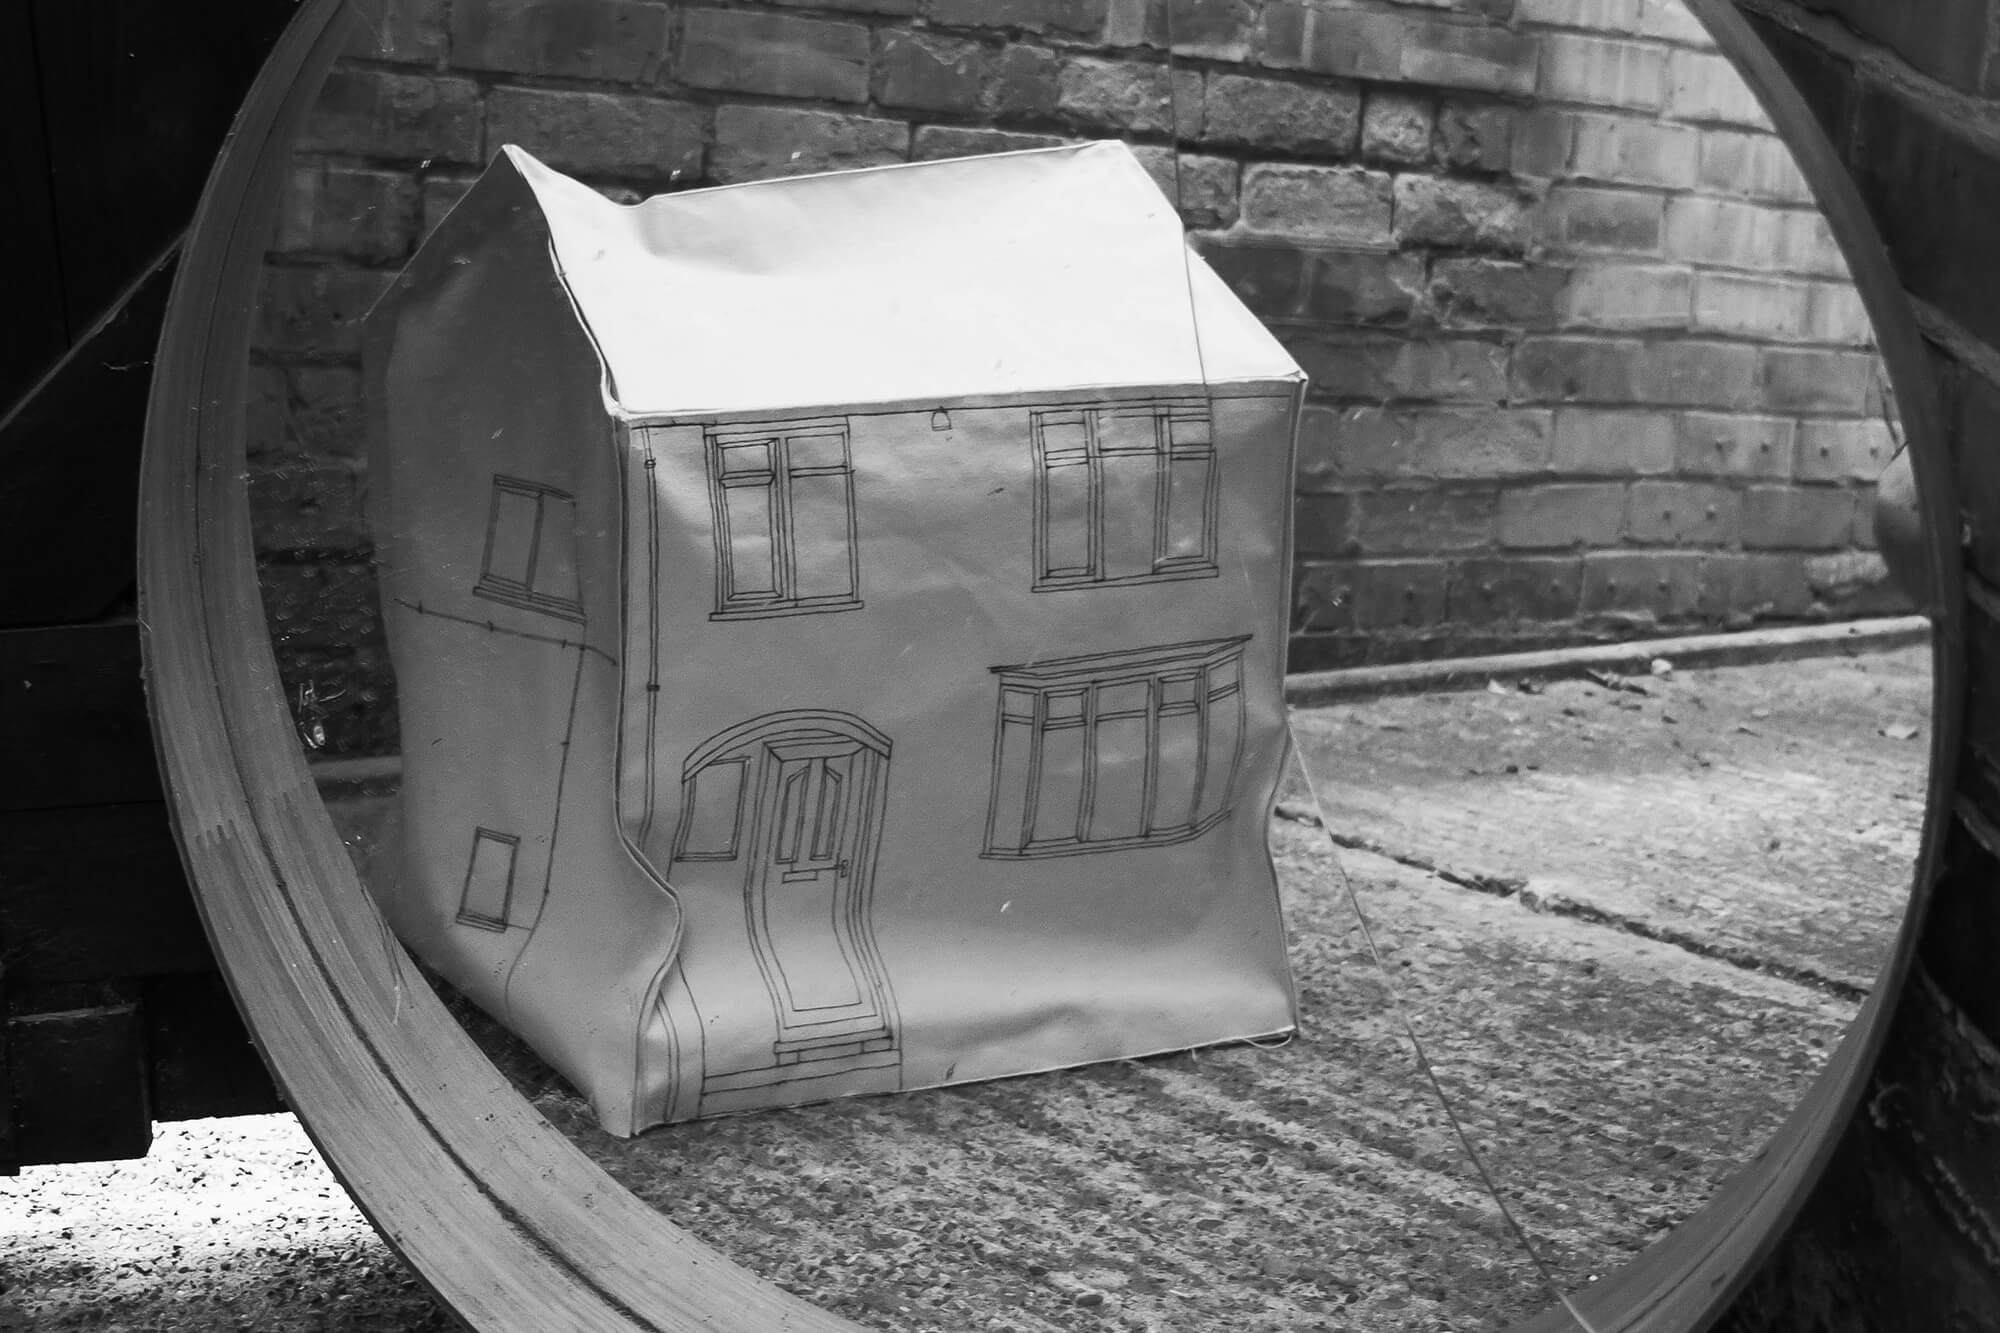 Black and white image of a paper model of a house in front of a circular mirror in a brick environment